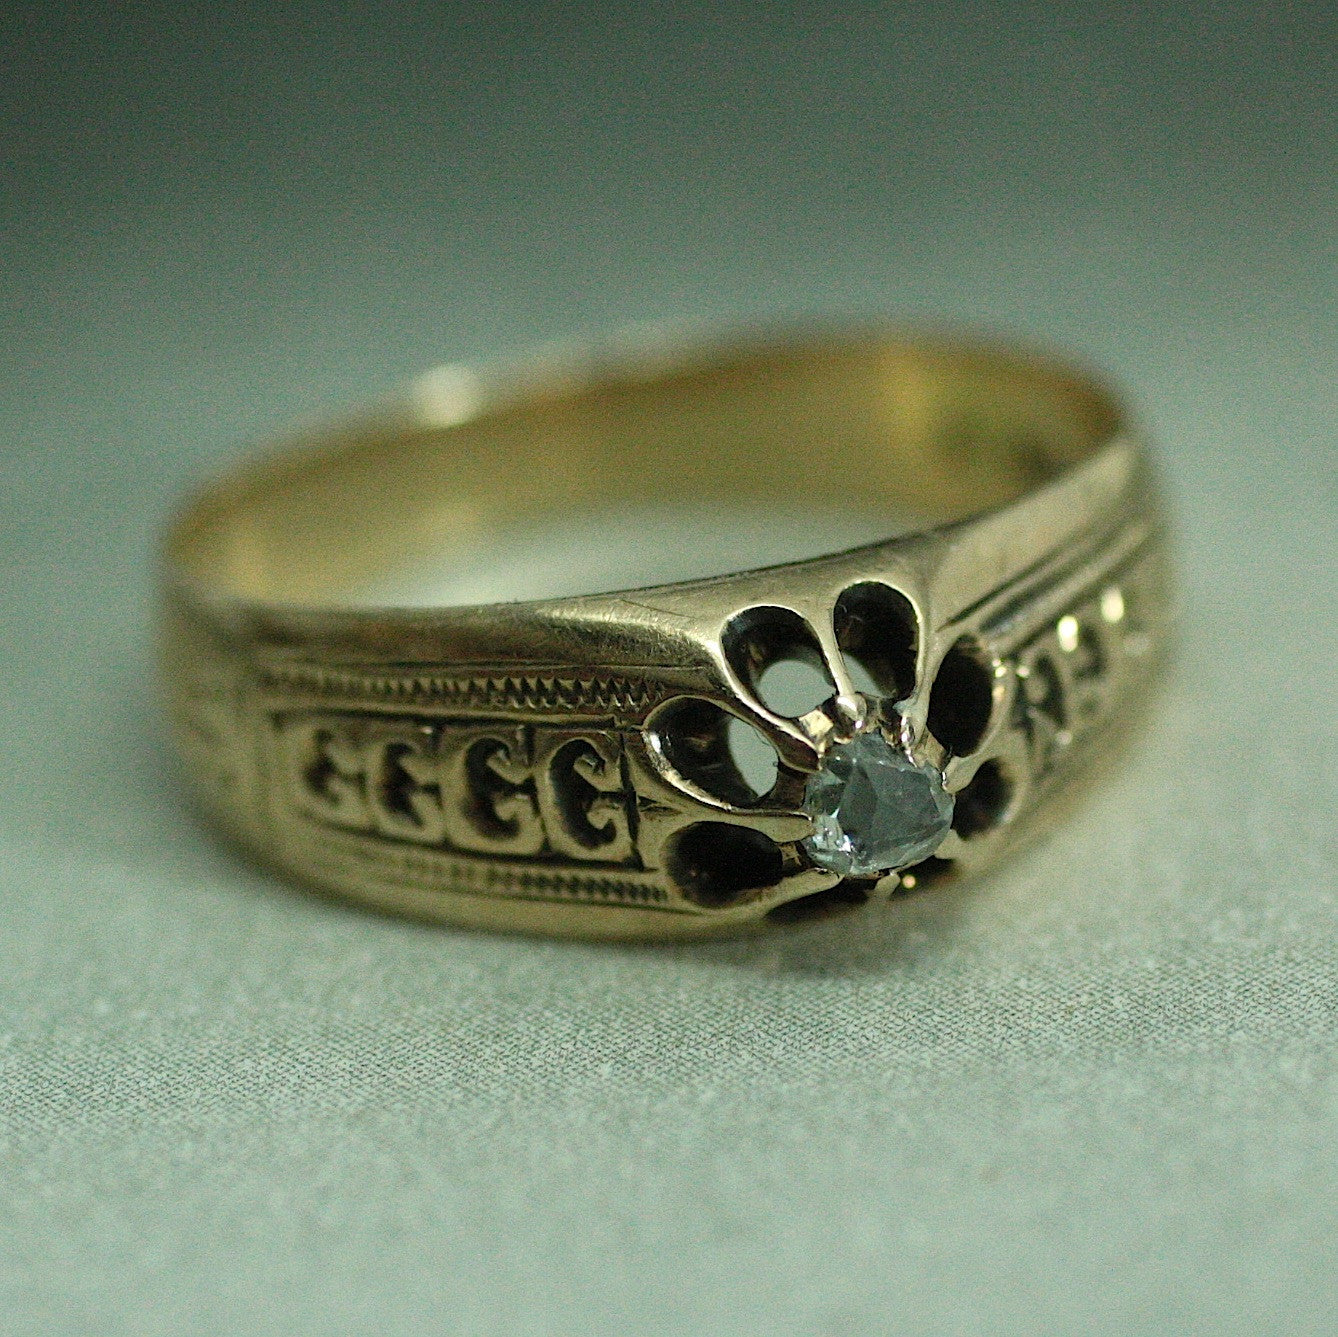 Circa 1850 Handmade 14K Rose Cut Diamond Ring